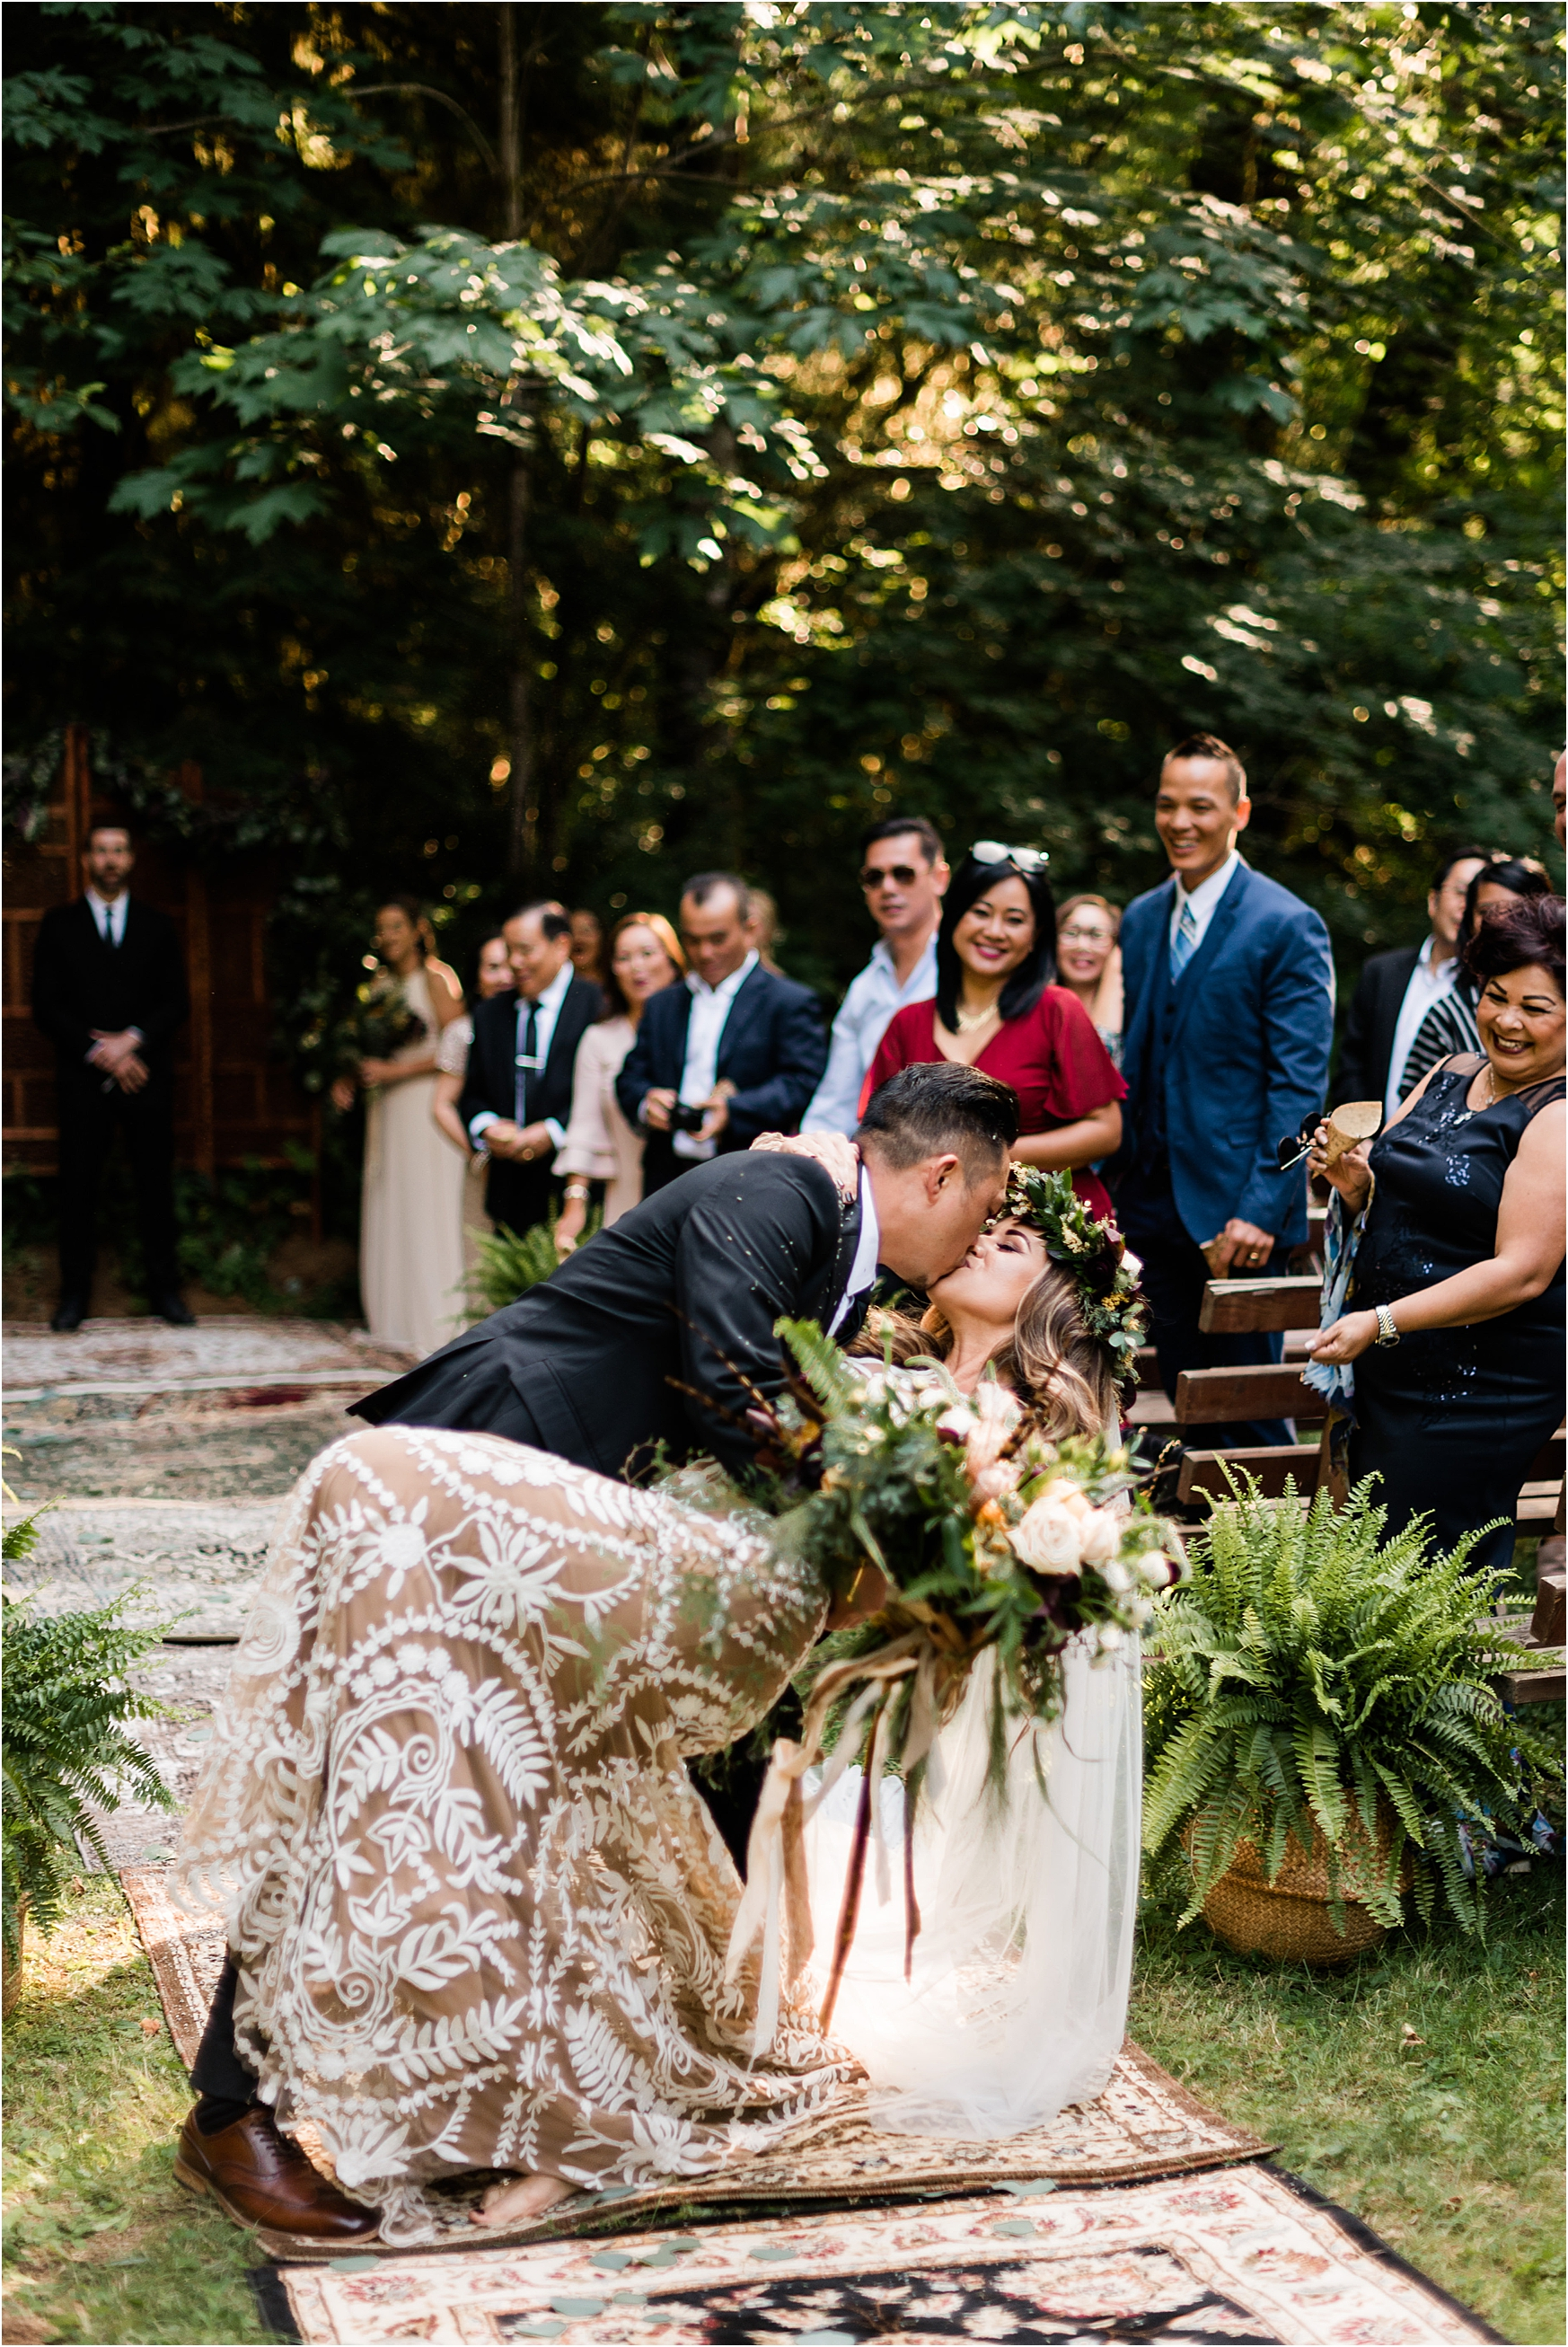 Ceremony exit at Cassy & Viva's bohemian Oregon destination wedding at Camp Lane. Image by Forthright Photo.